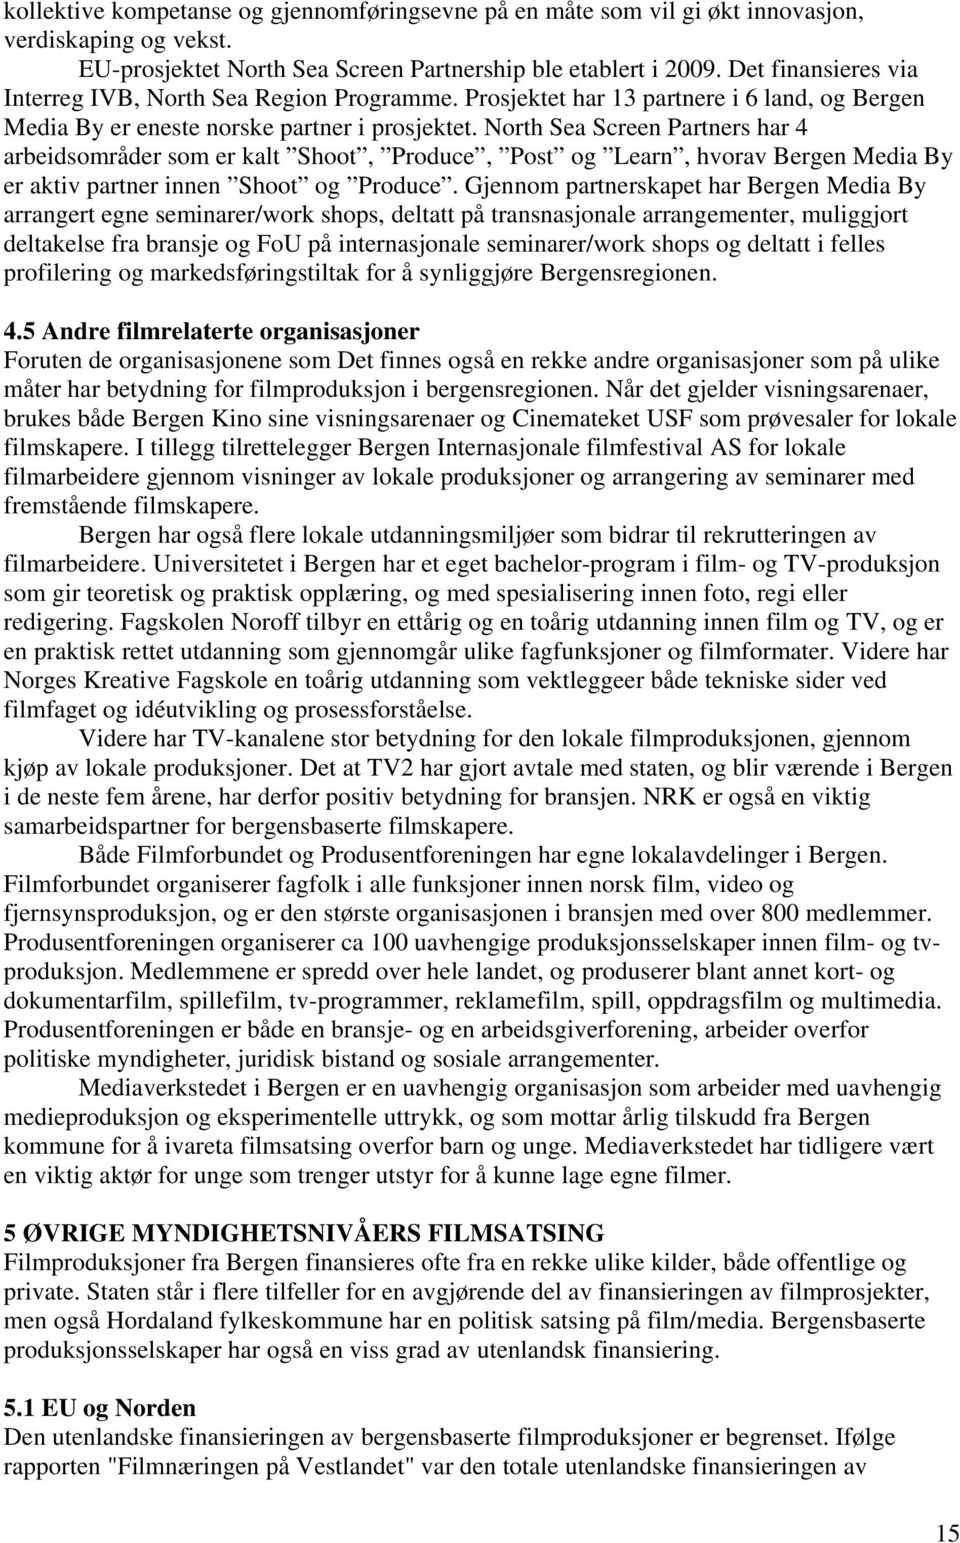 North Sea Screen Partners har 4 arbeidsområder som er kalt Shoot, Produce, Post og Learn, hvorav Bergen Media By er aktiv partner innen Shoot og Produce.